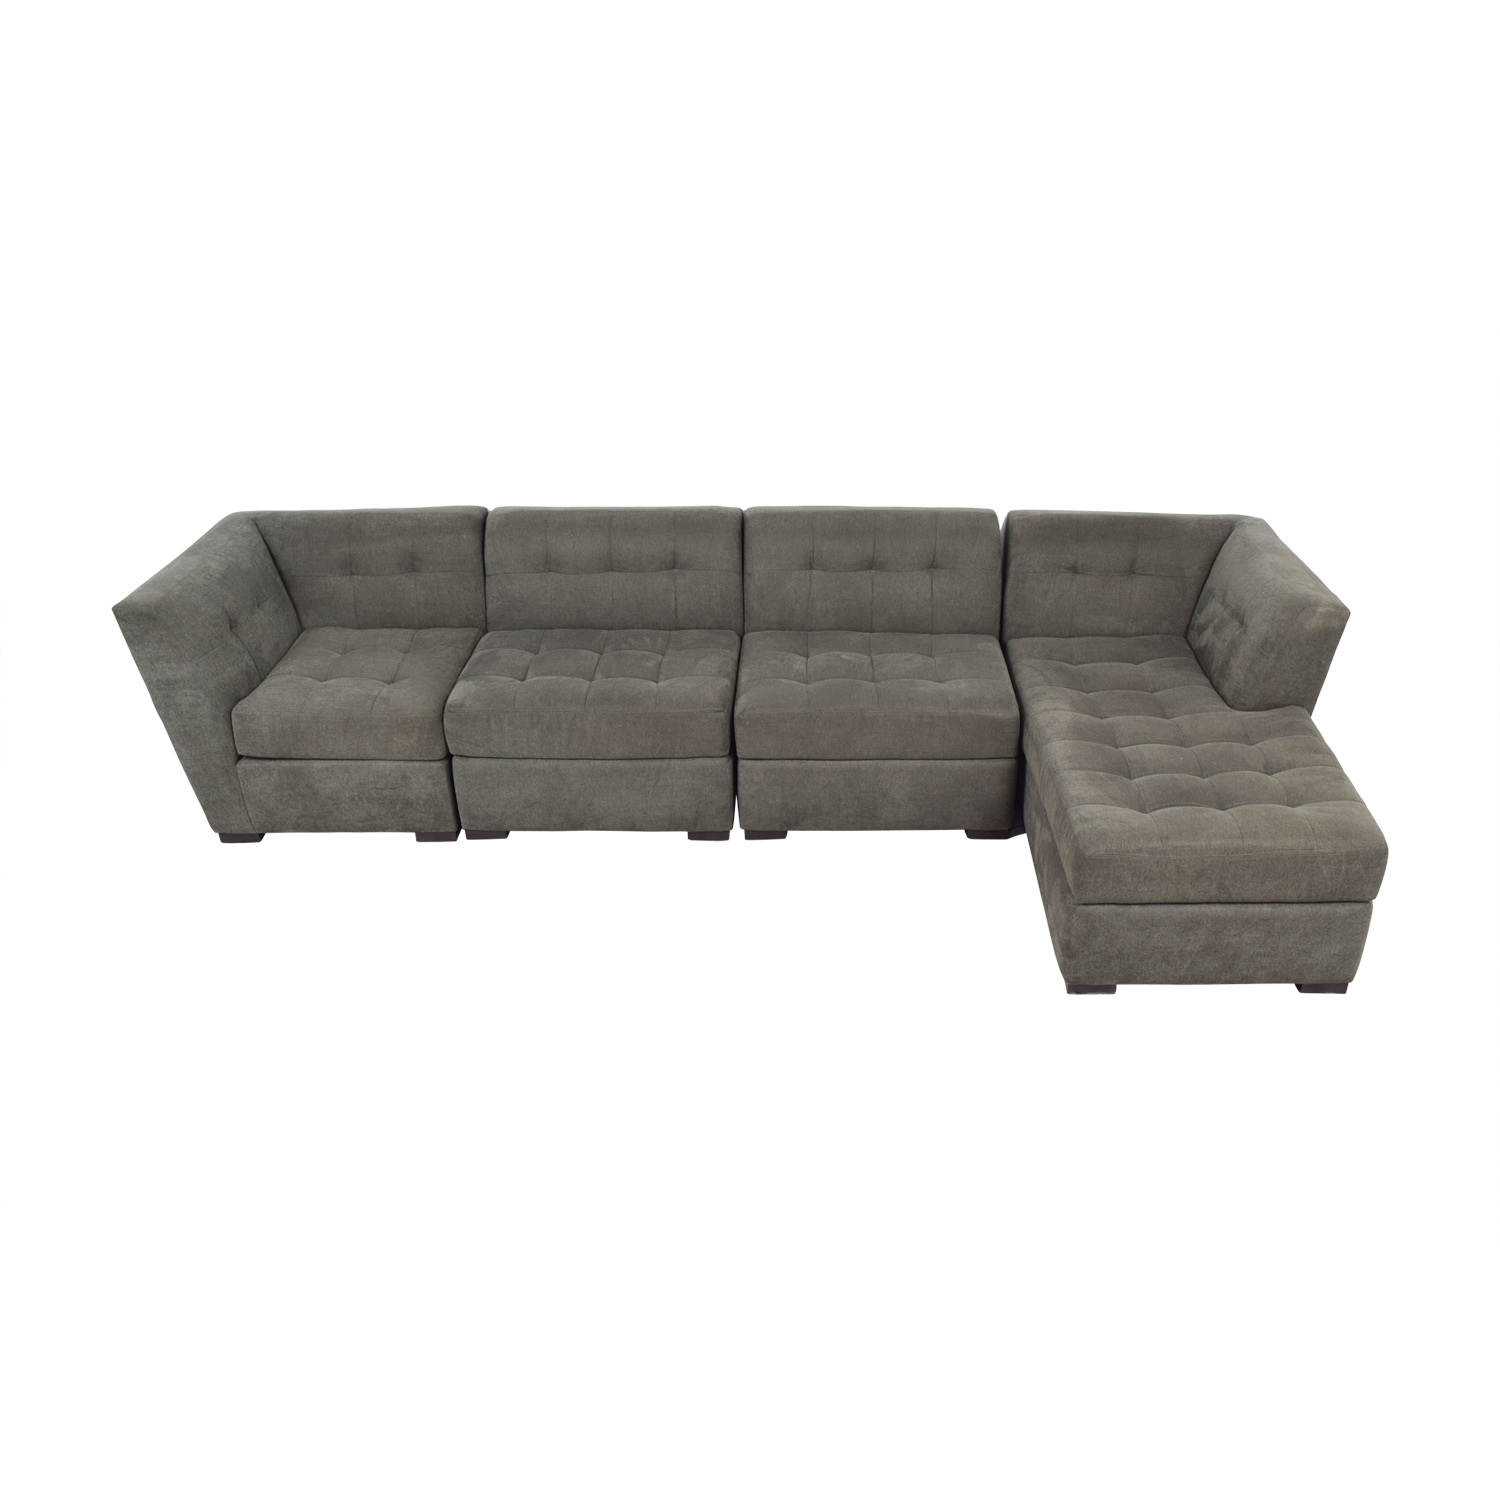 70 off macy s macy s grey tufted four piece chaise sectional sofas